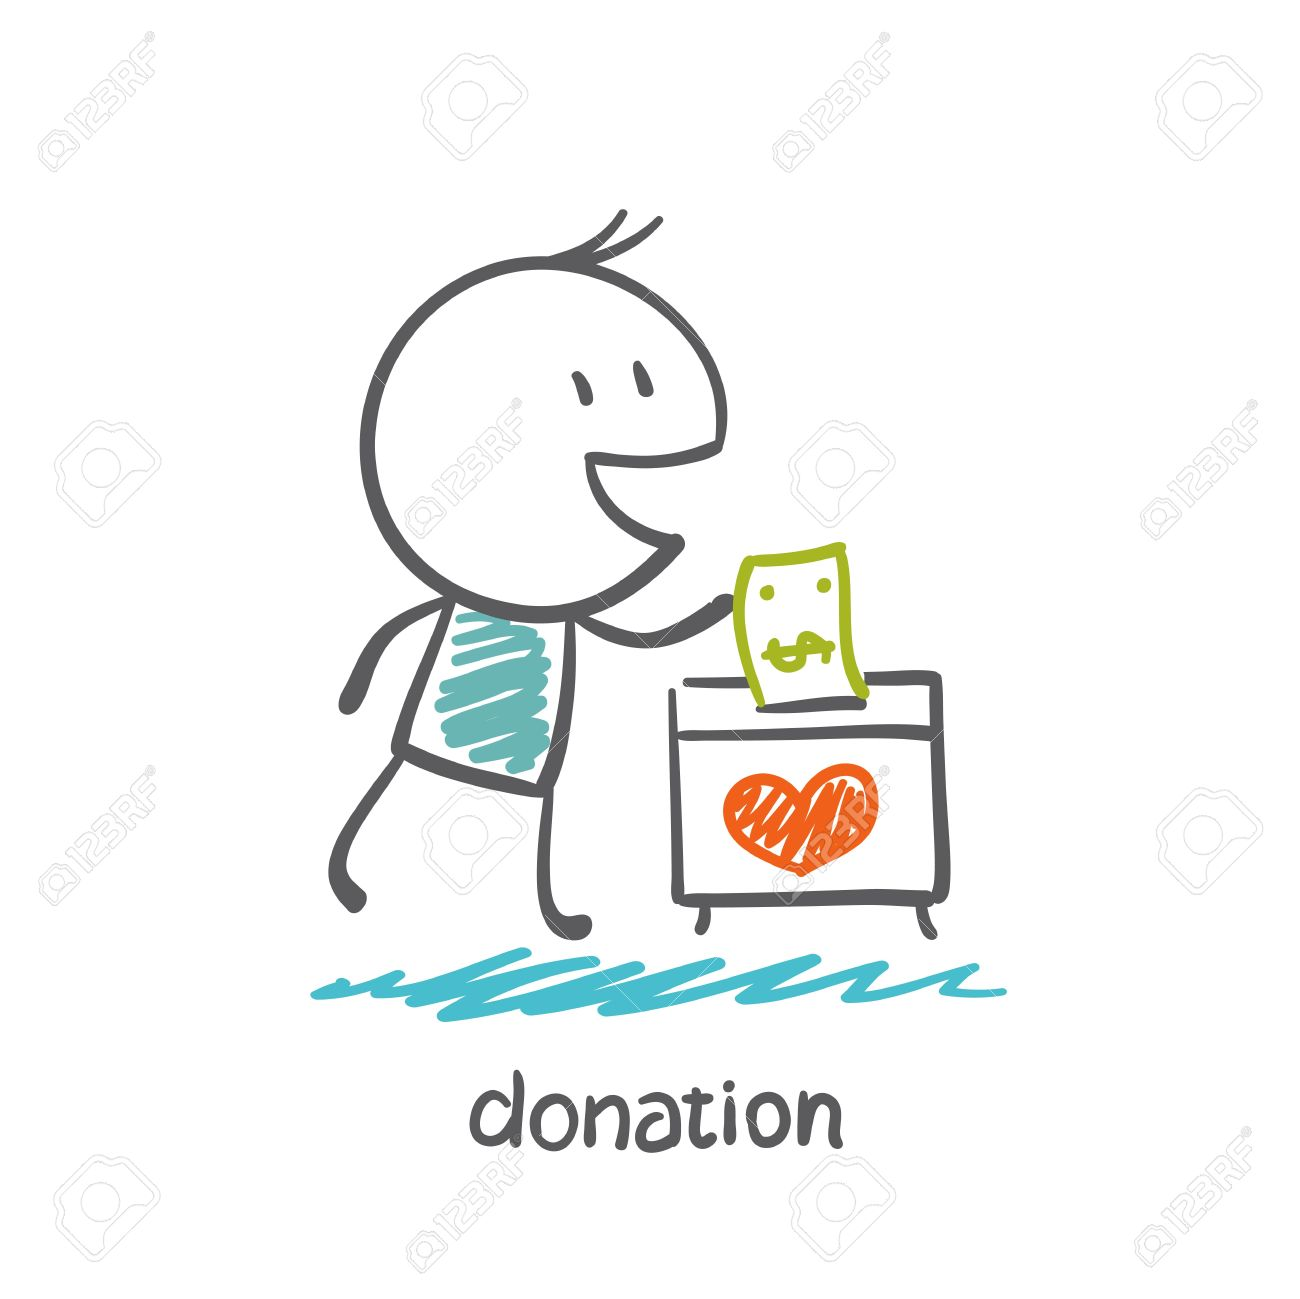 man throws money in a box with hearts illustration - 36067799